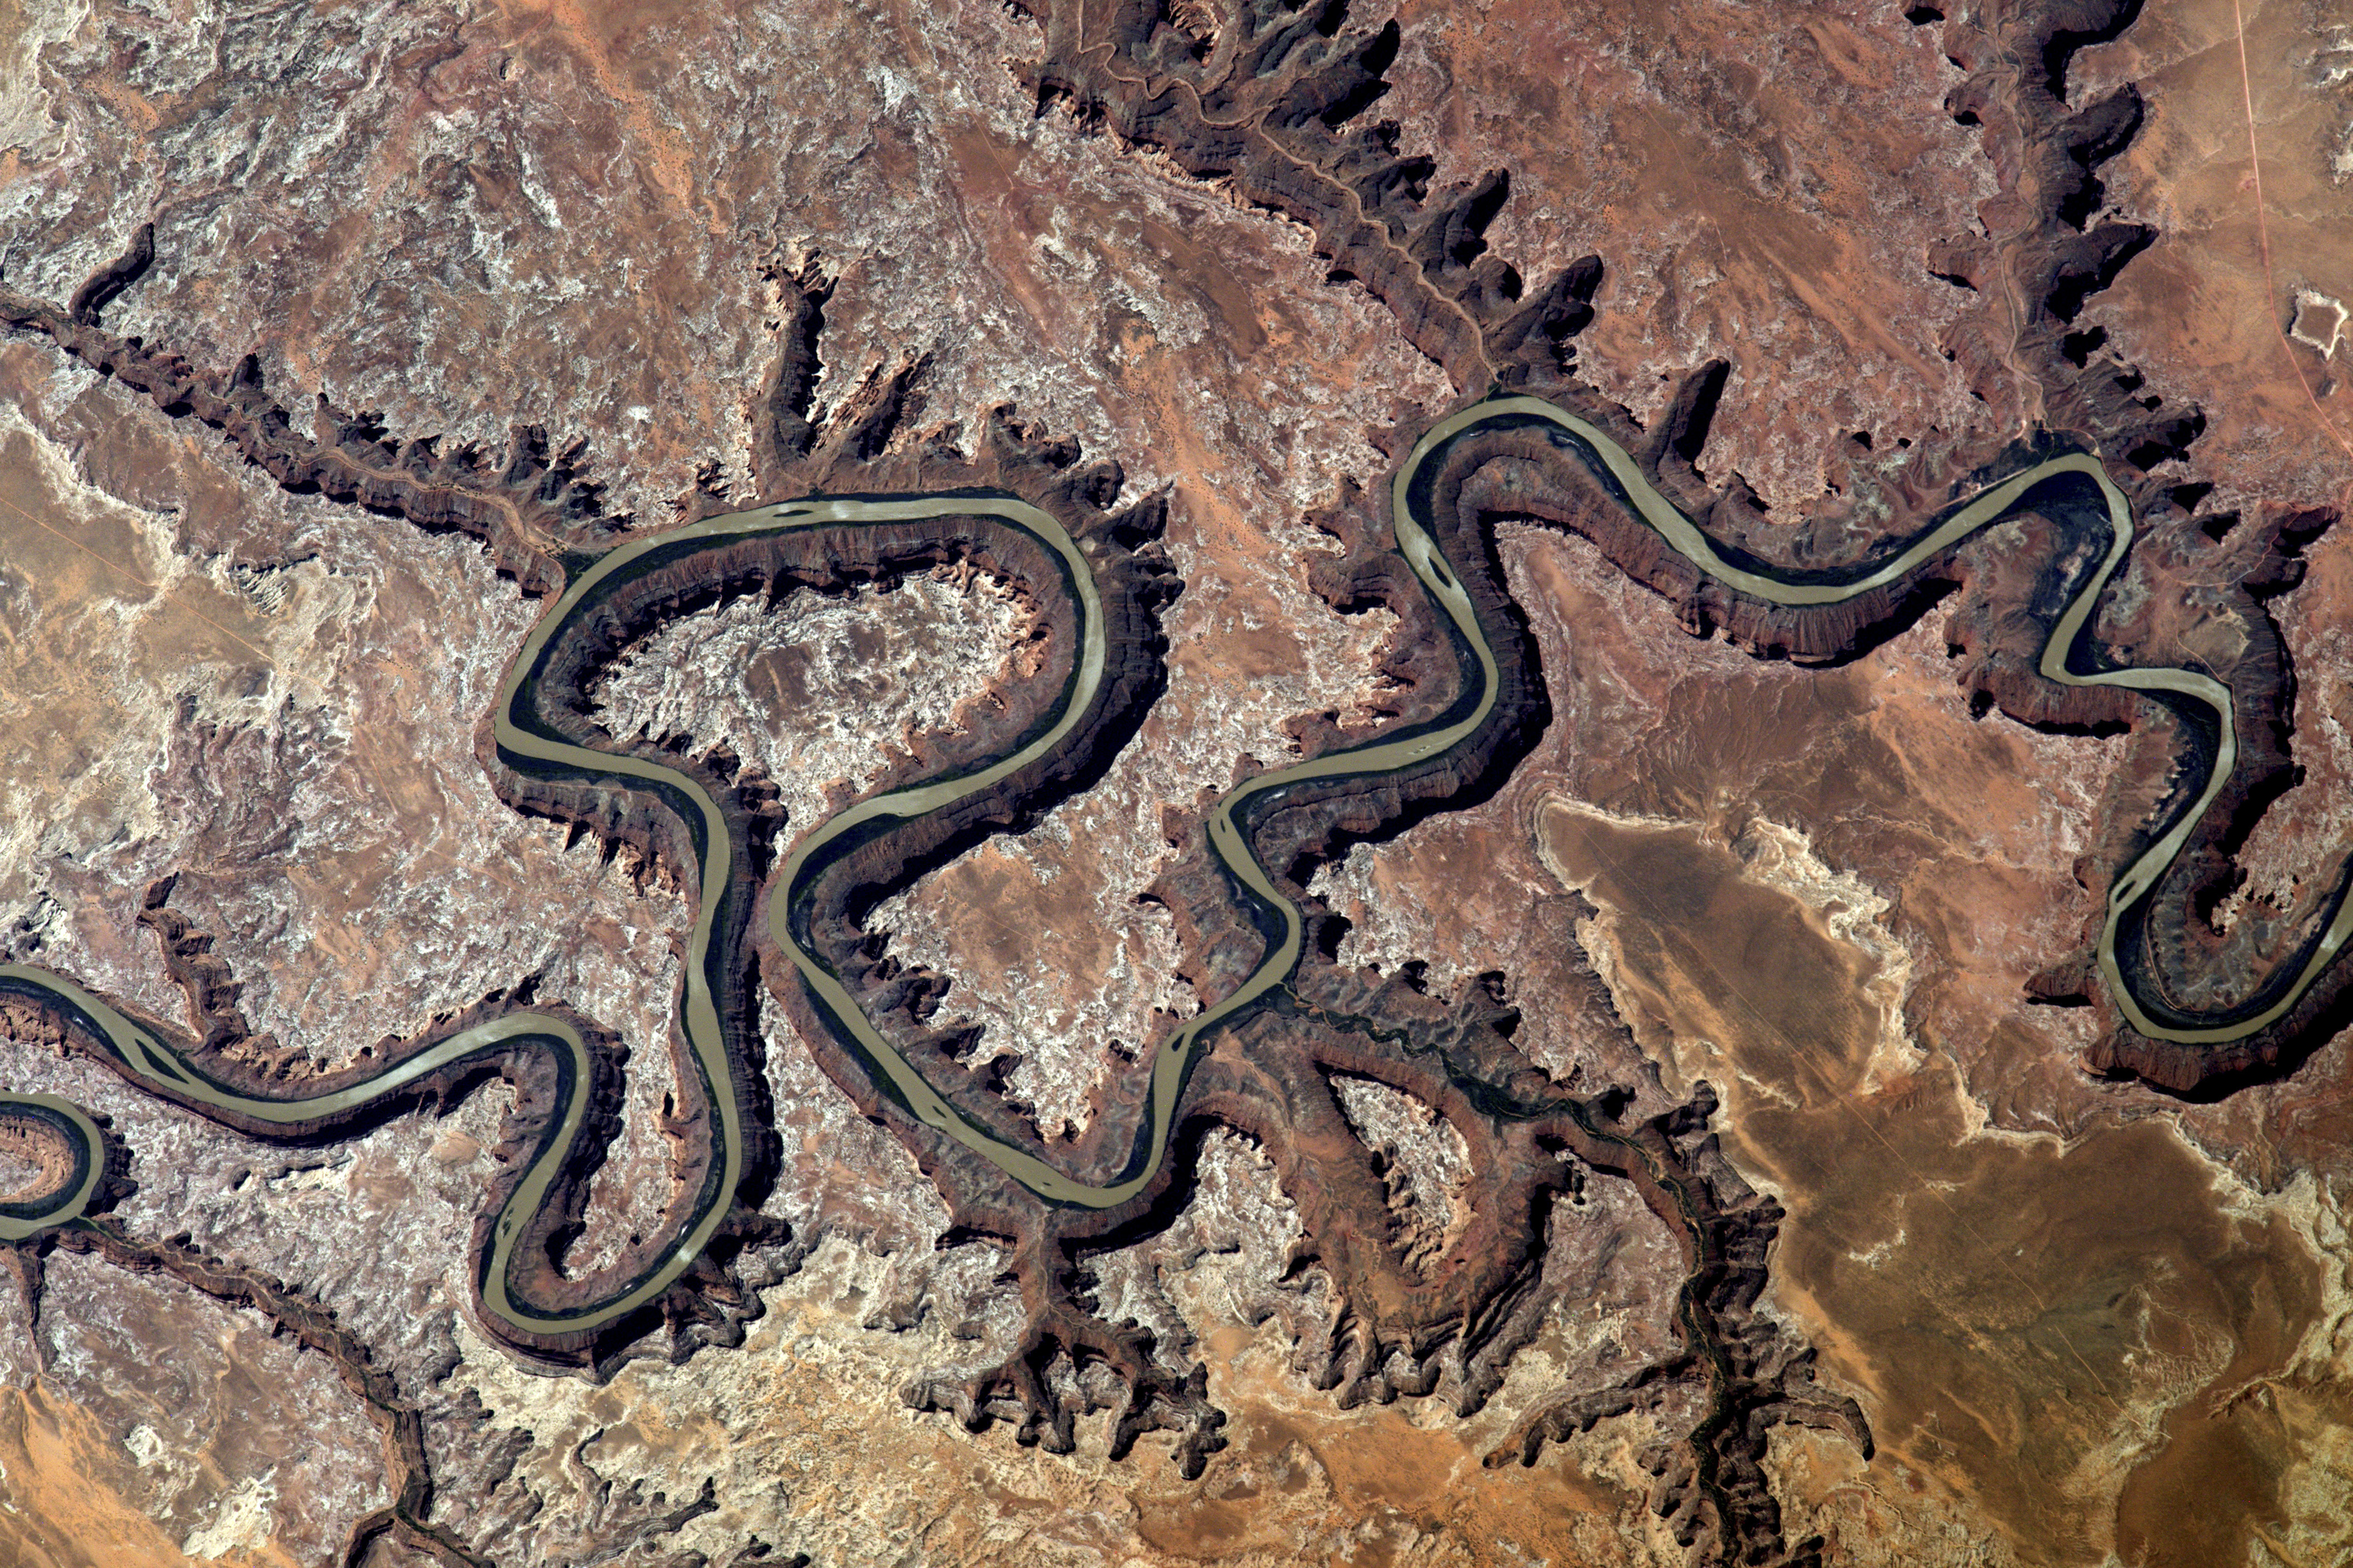 The Green River carves a canyon 300 metres deep as it snakes its way across Utah's landscape (NASA/PA)